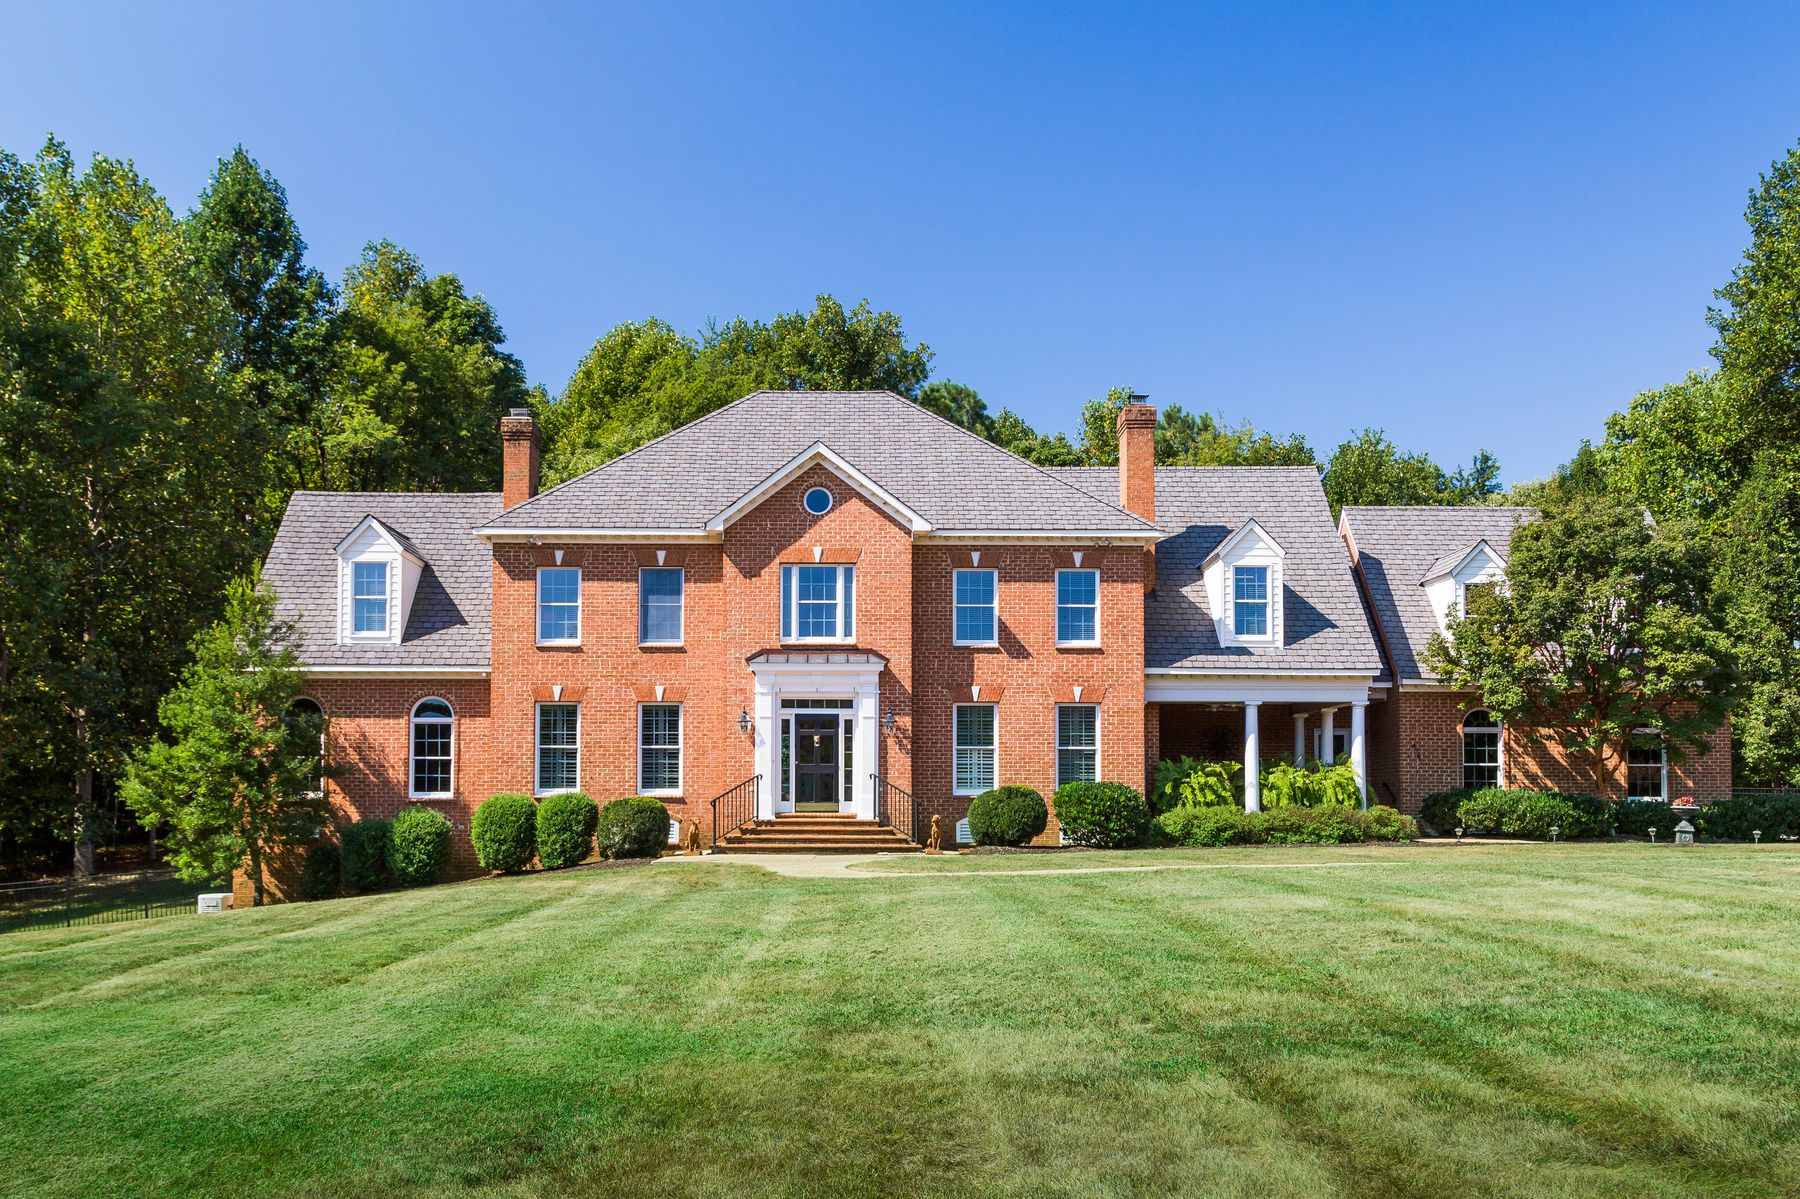 Single Family Home for Sale at Deerview 1559 South Ponds Trail Crozier, Virginia 23039 United StatesIn/Around: Charlottesville